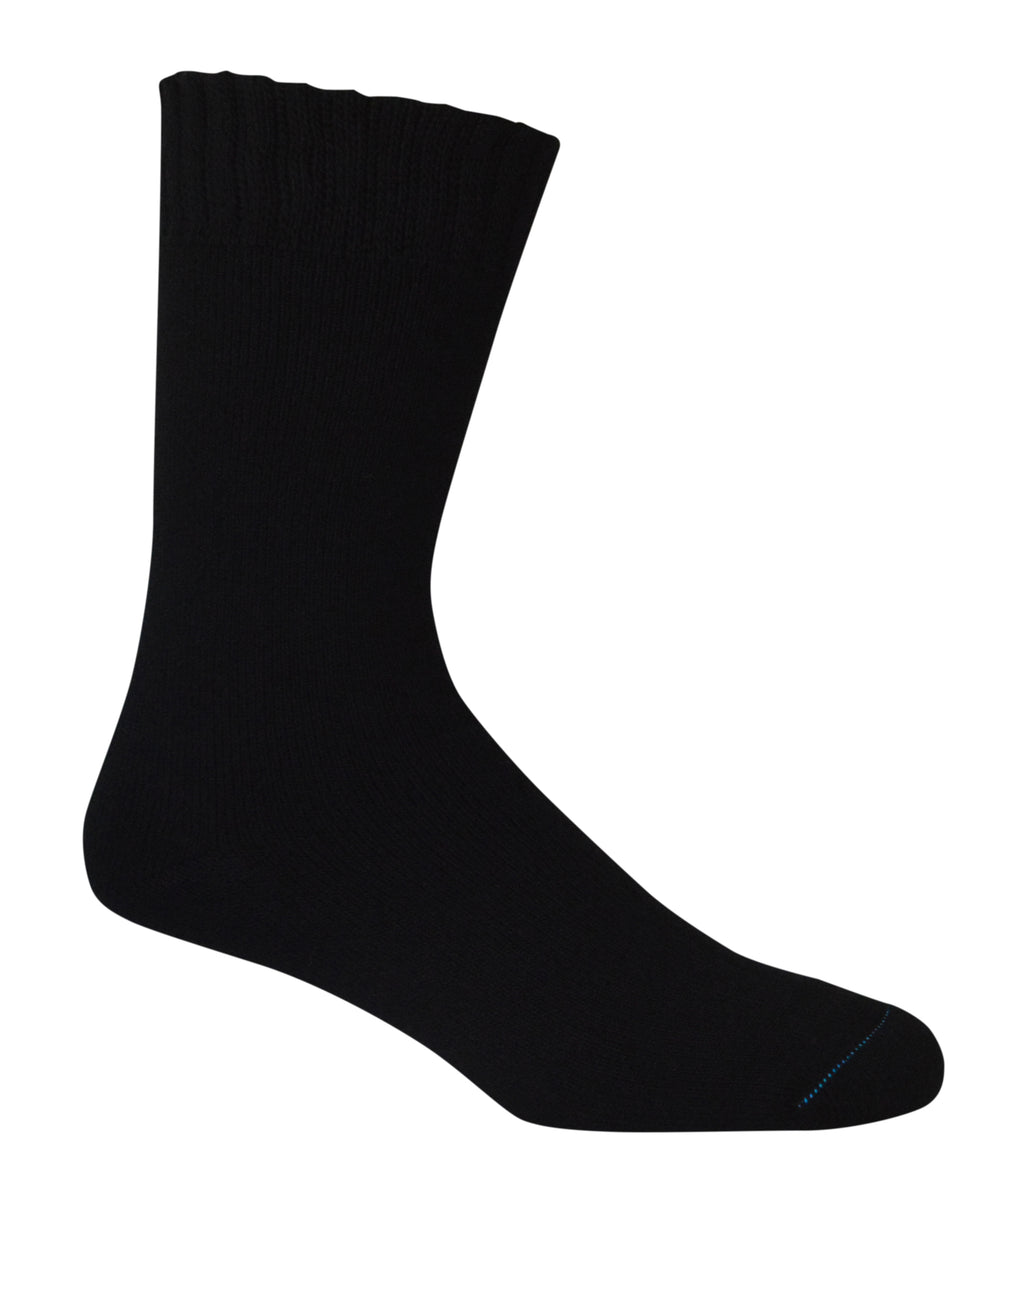 BT | Mens | Socks | Bamboo| Extra Thick | Black